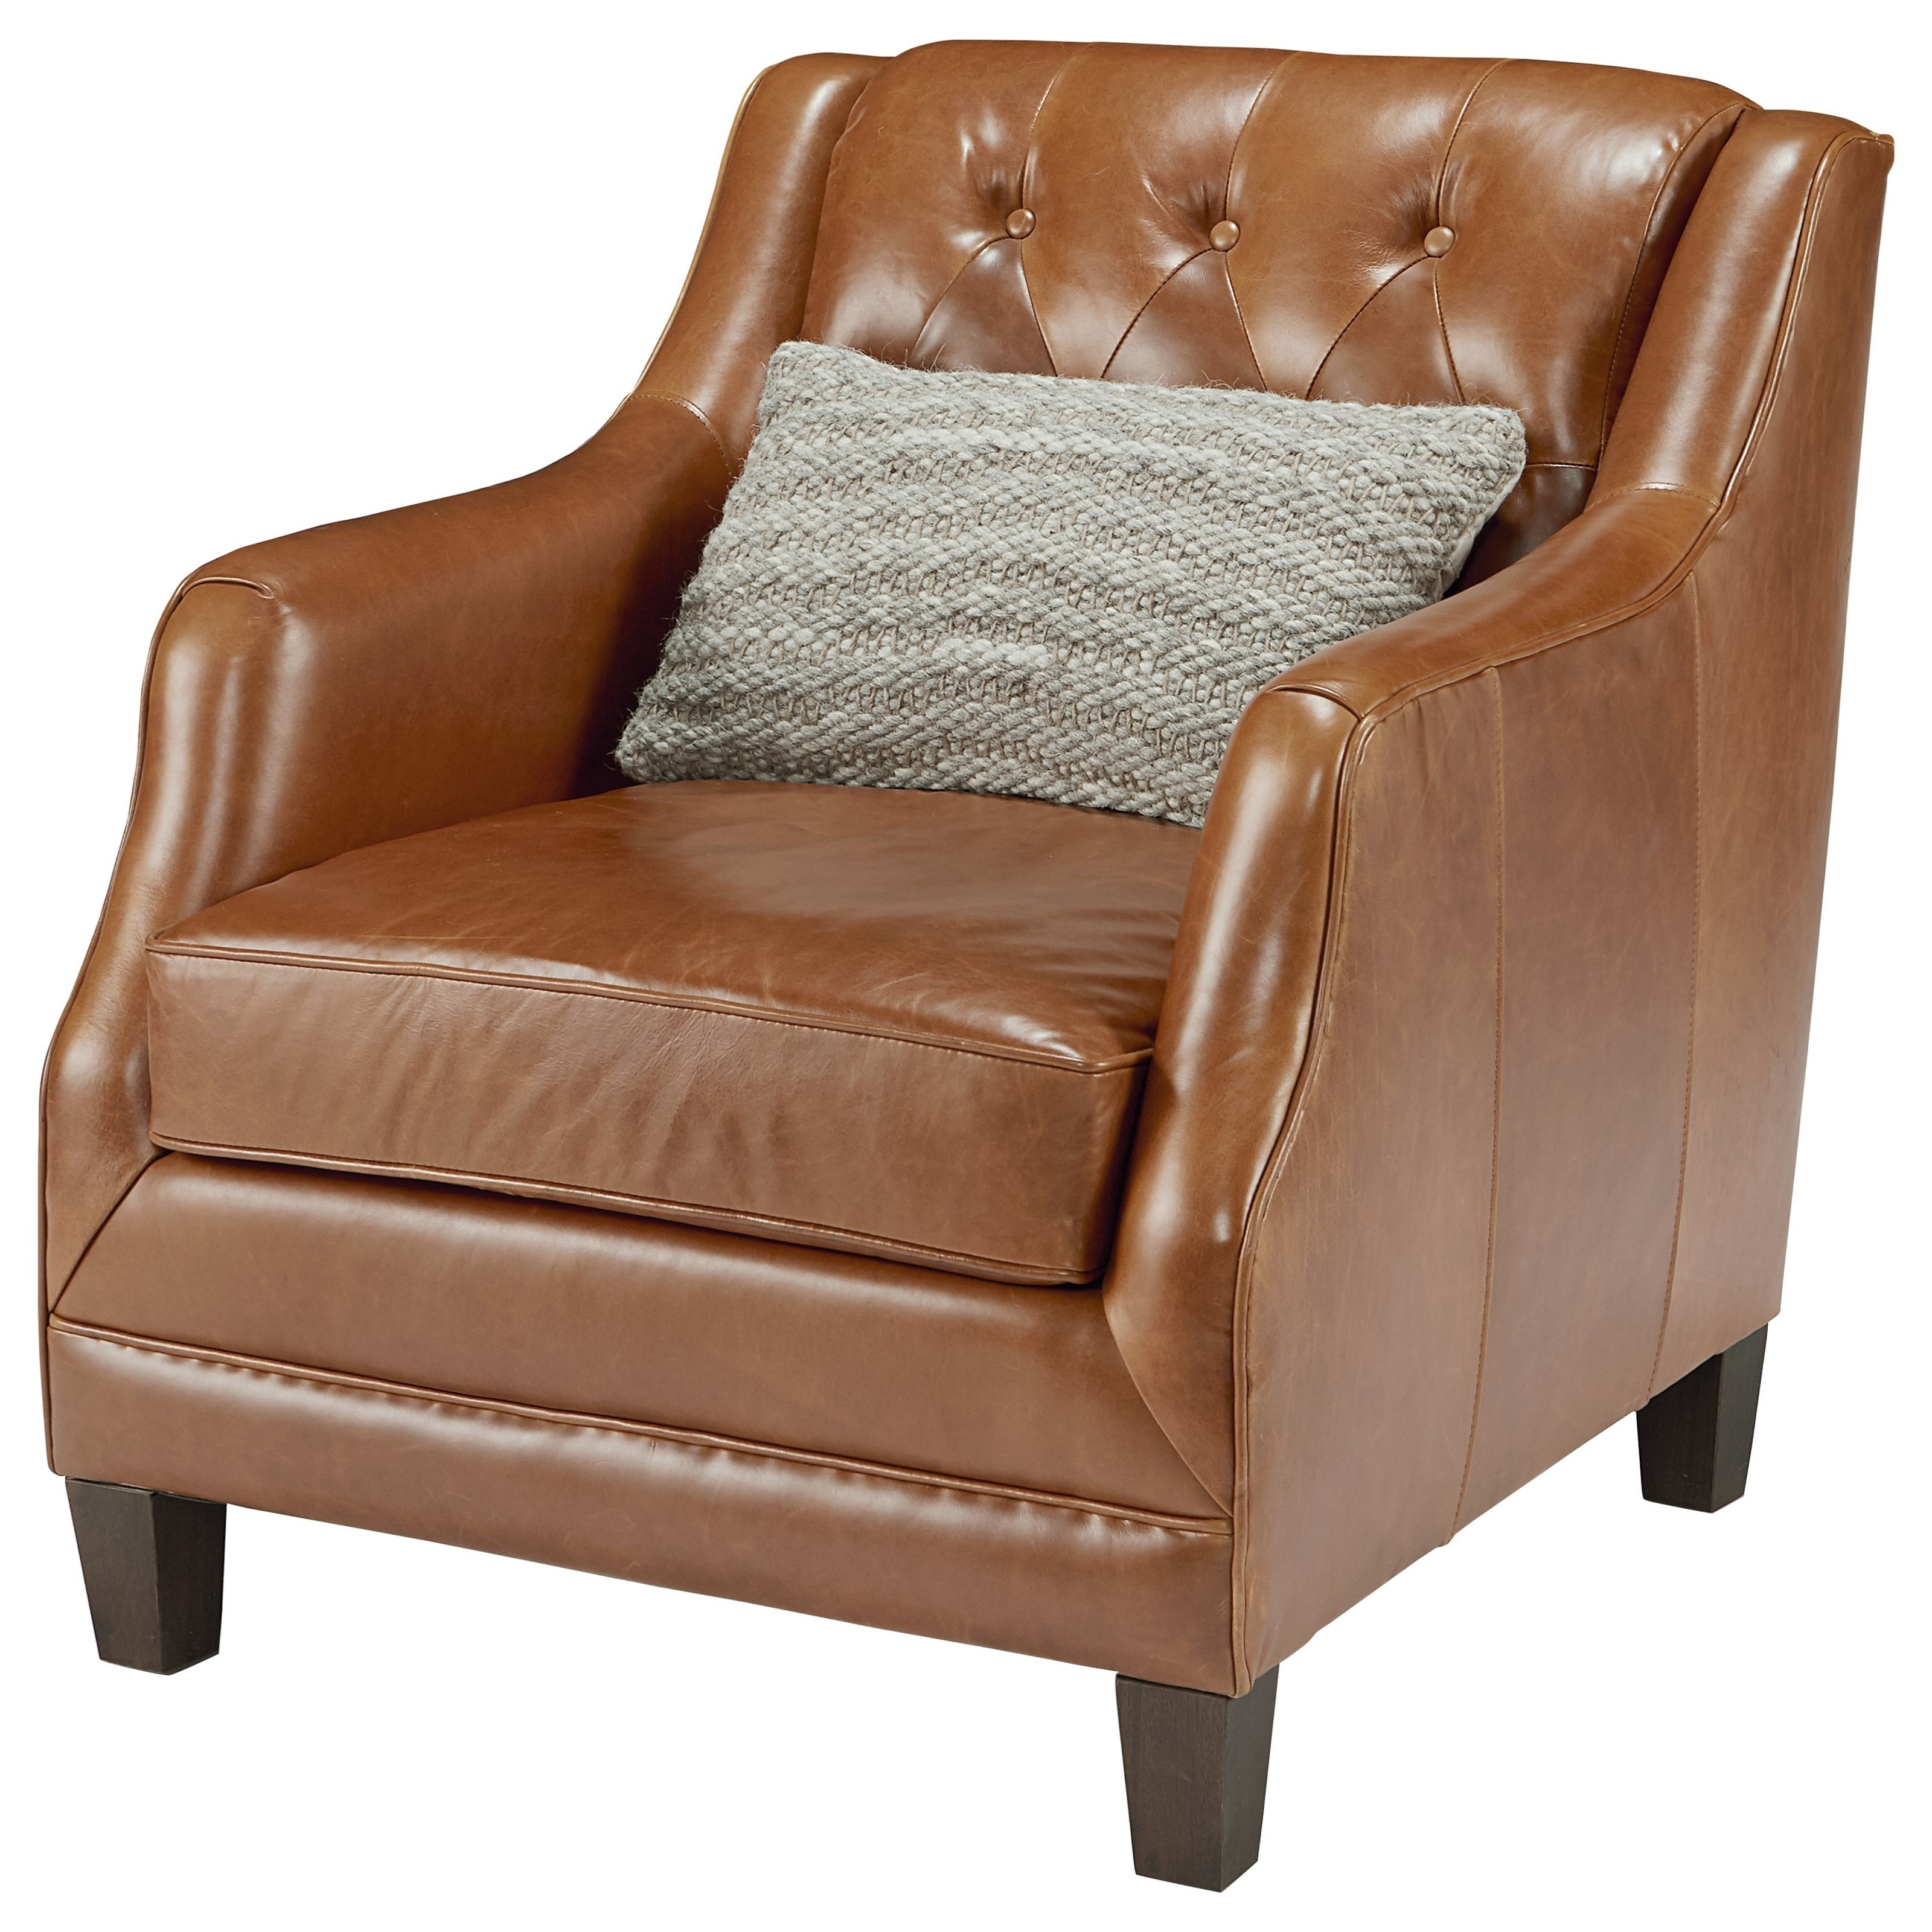 Well Known Magnolia Home Revival Arm Chairs Throughout Leather Upholstered Chair With Button Tuftingmagnolia Home (View 8 of 20)